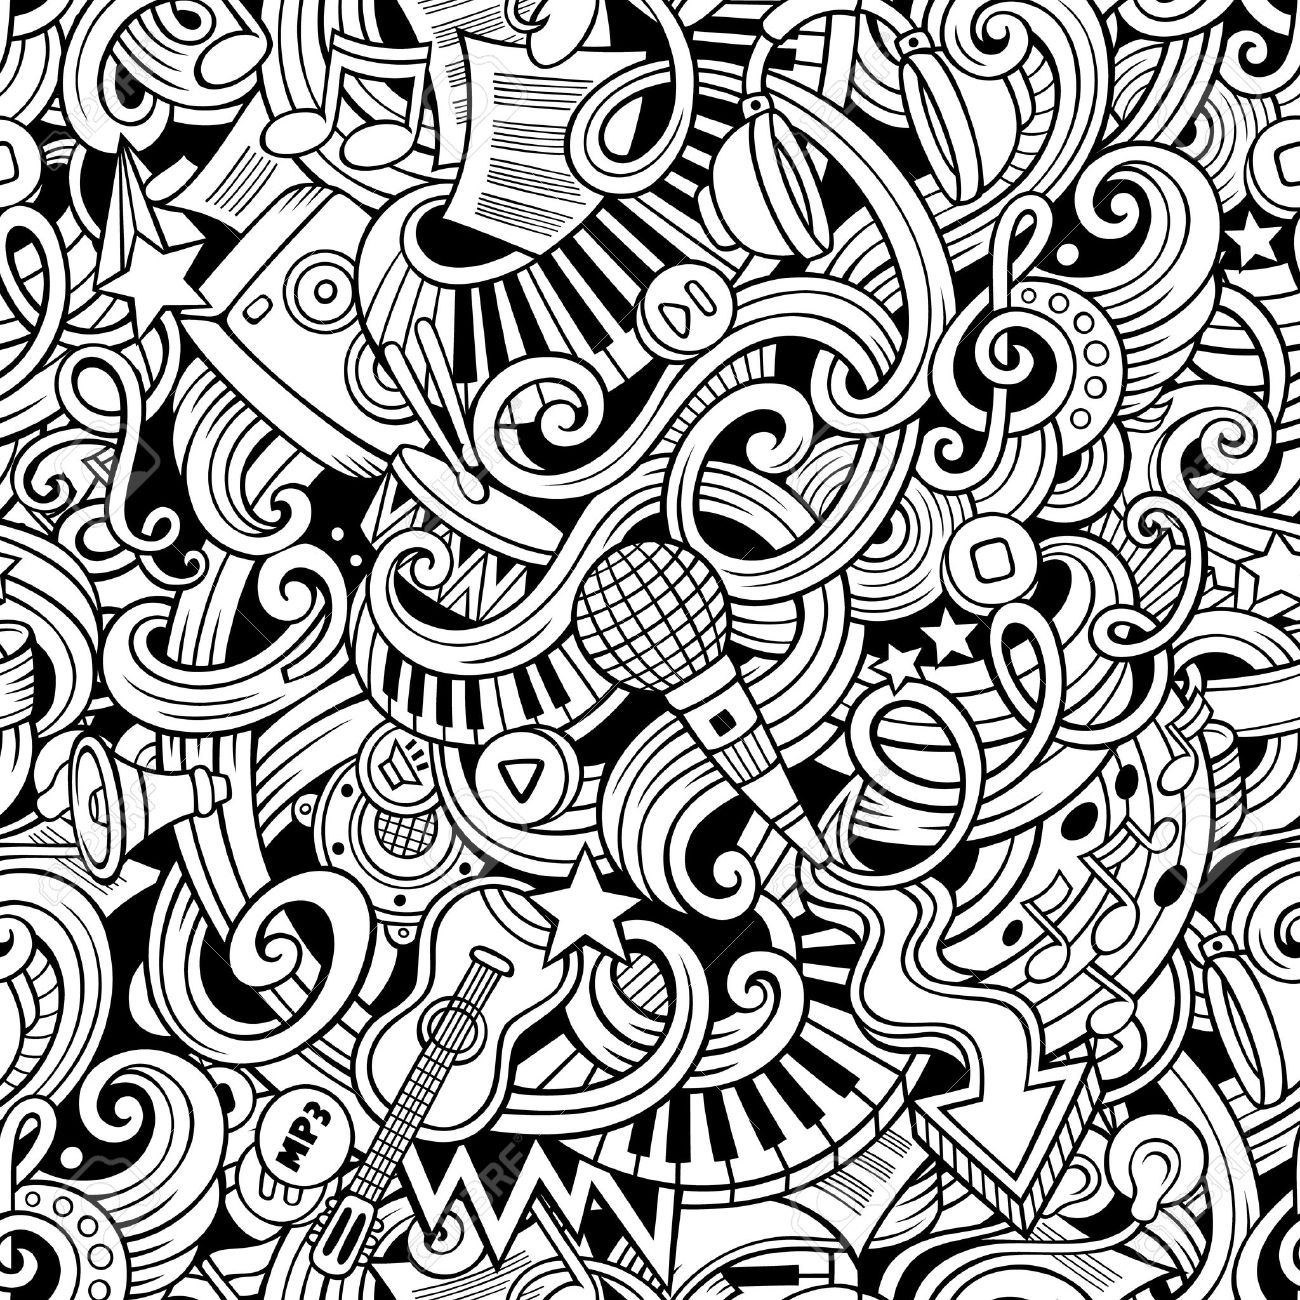 Cartoon hand-drawn doodles on the subject of music style theme seamless pattern. Vector line art background - 48486061